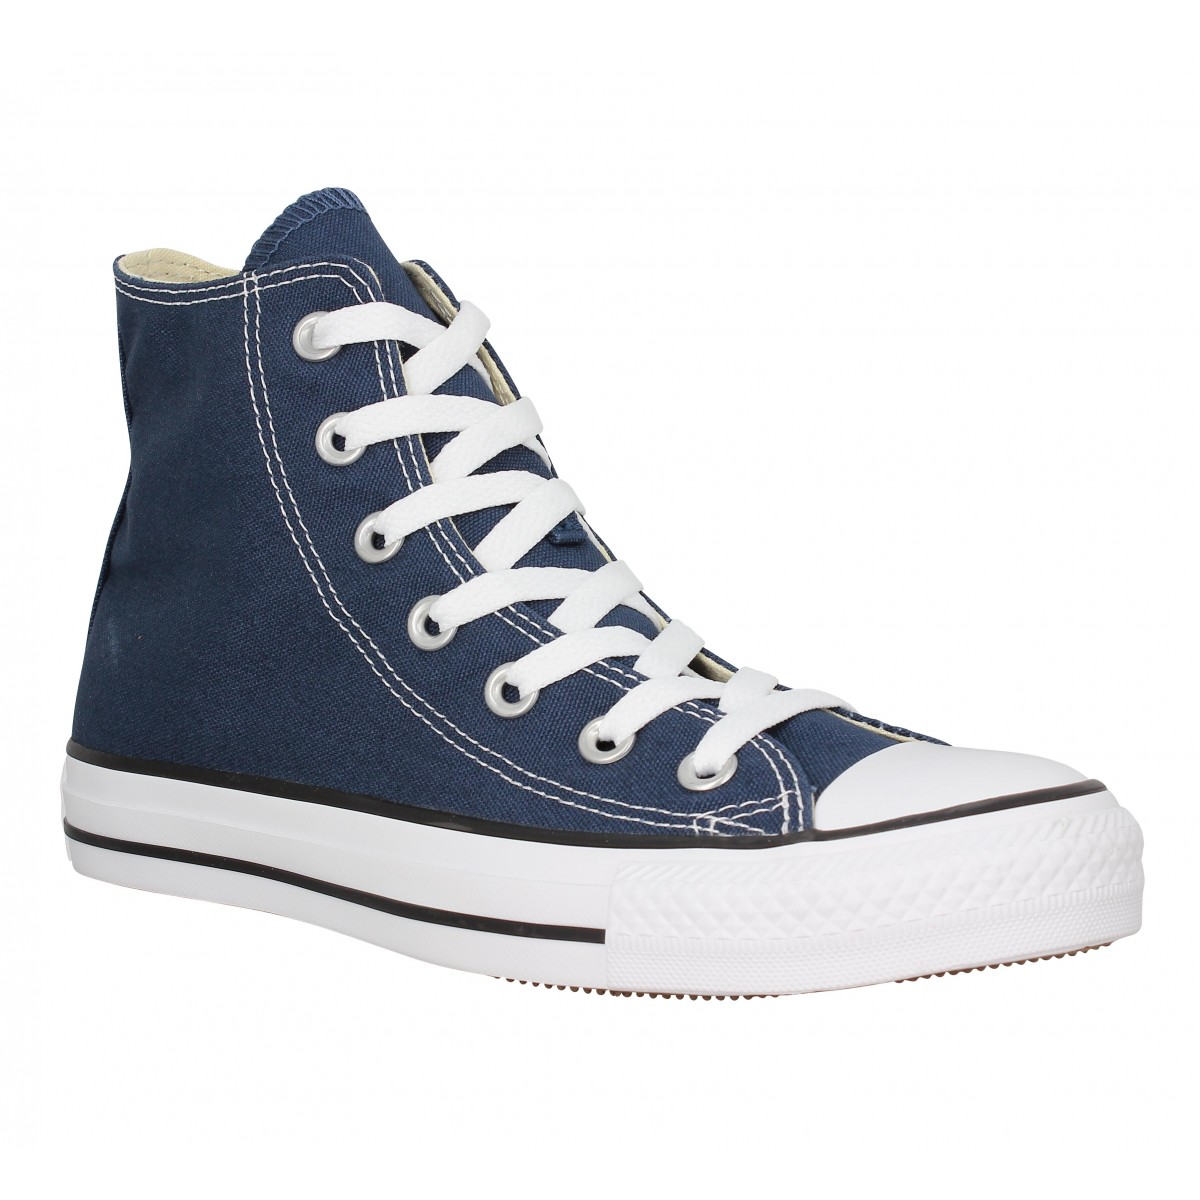 Baskets CONVERSE Chuck Taylor All Star Hi toile Homme Marine